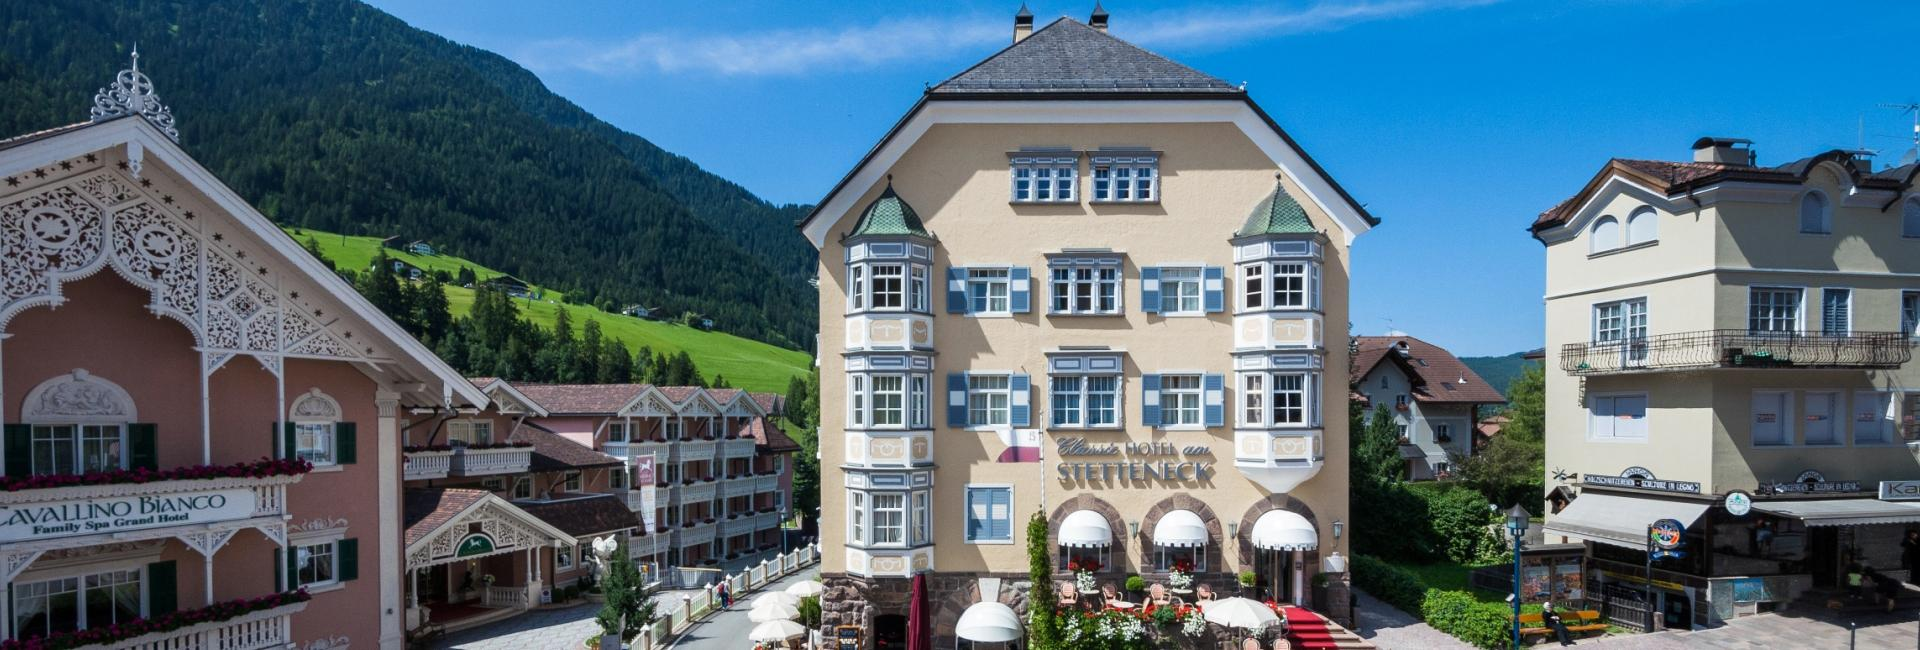 Classic Hotel am Stetteneck in South Tyrol